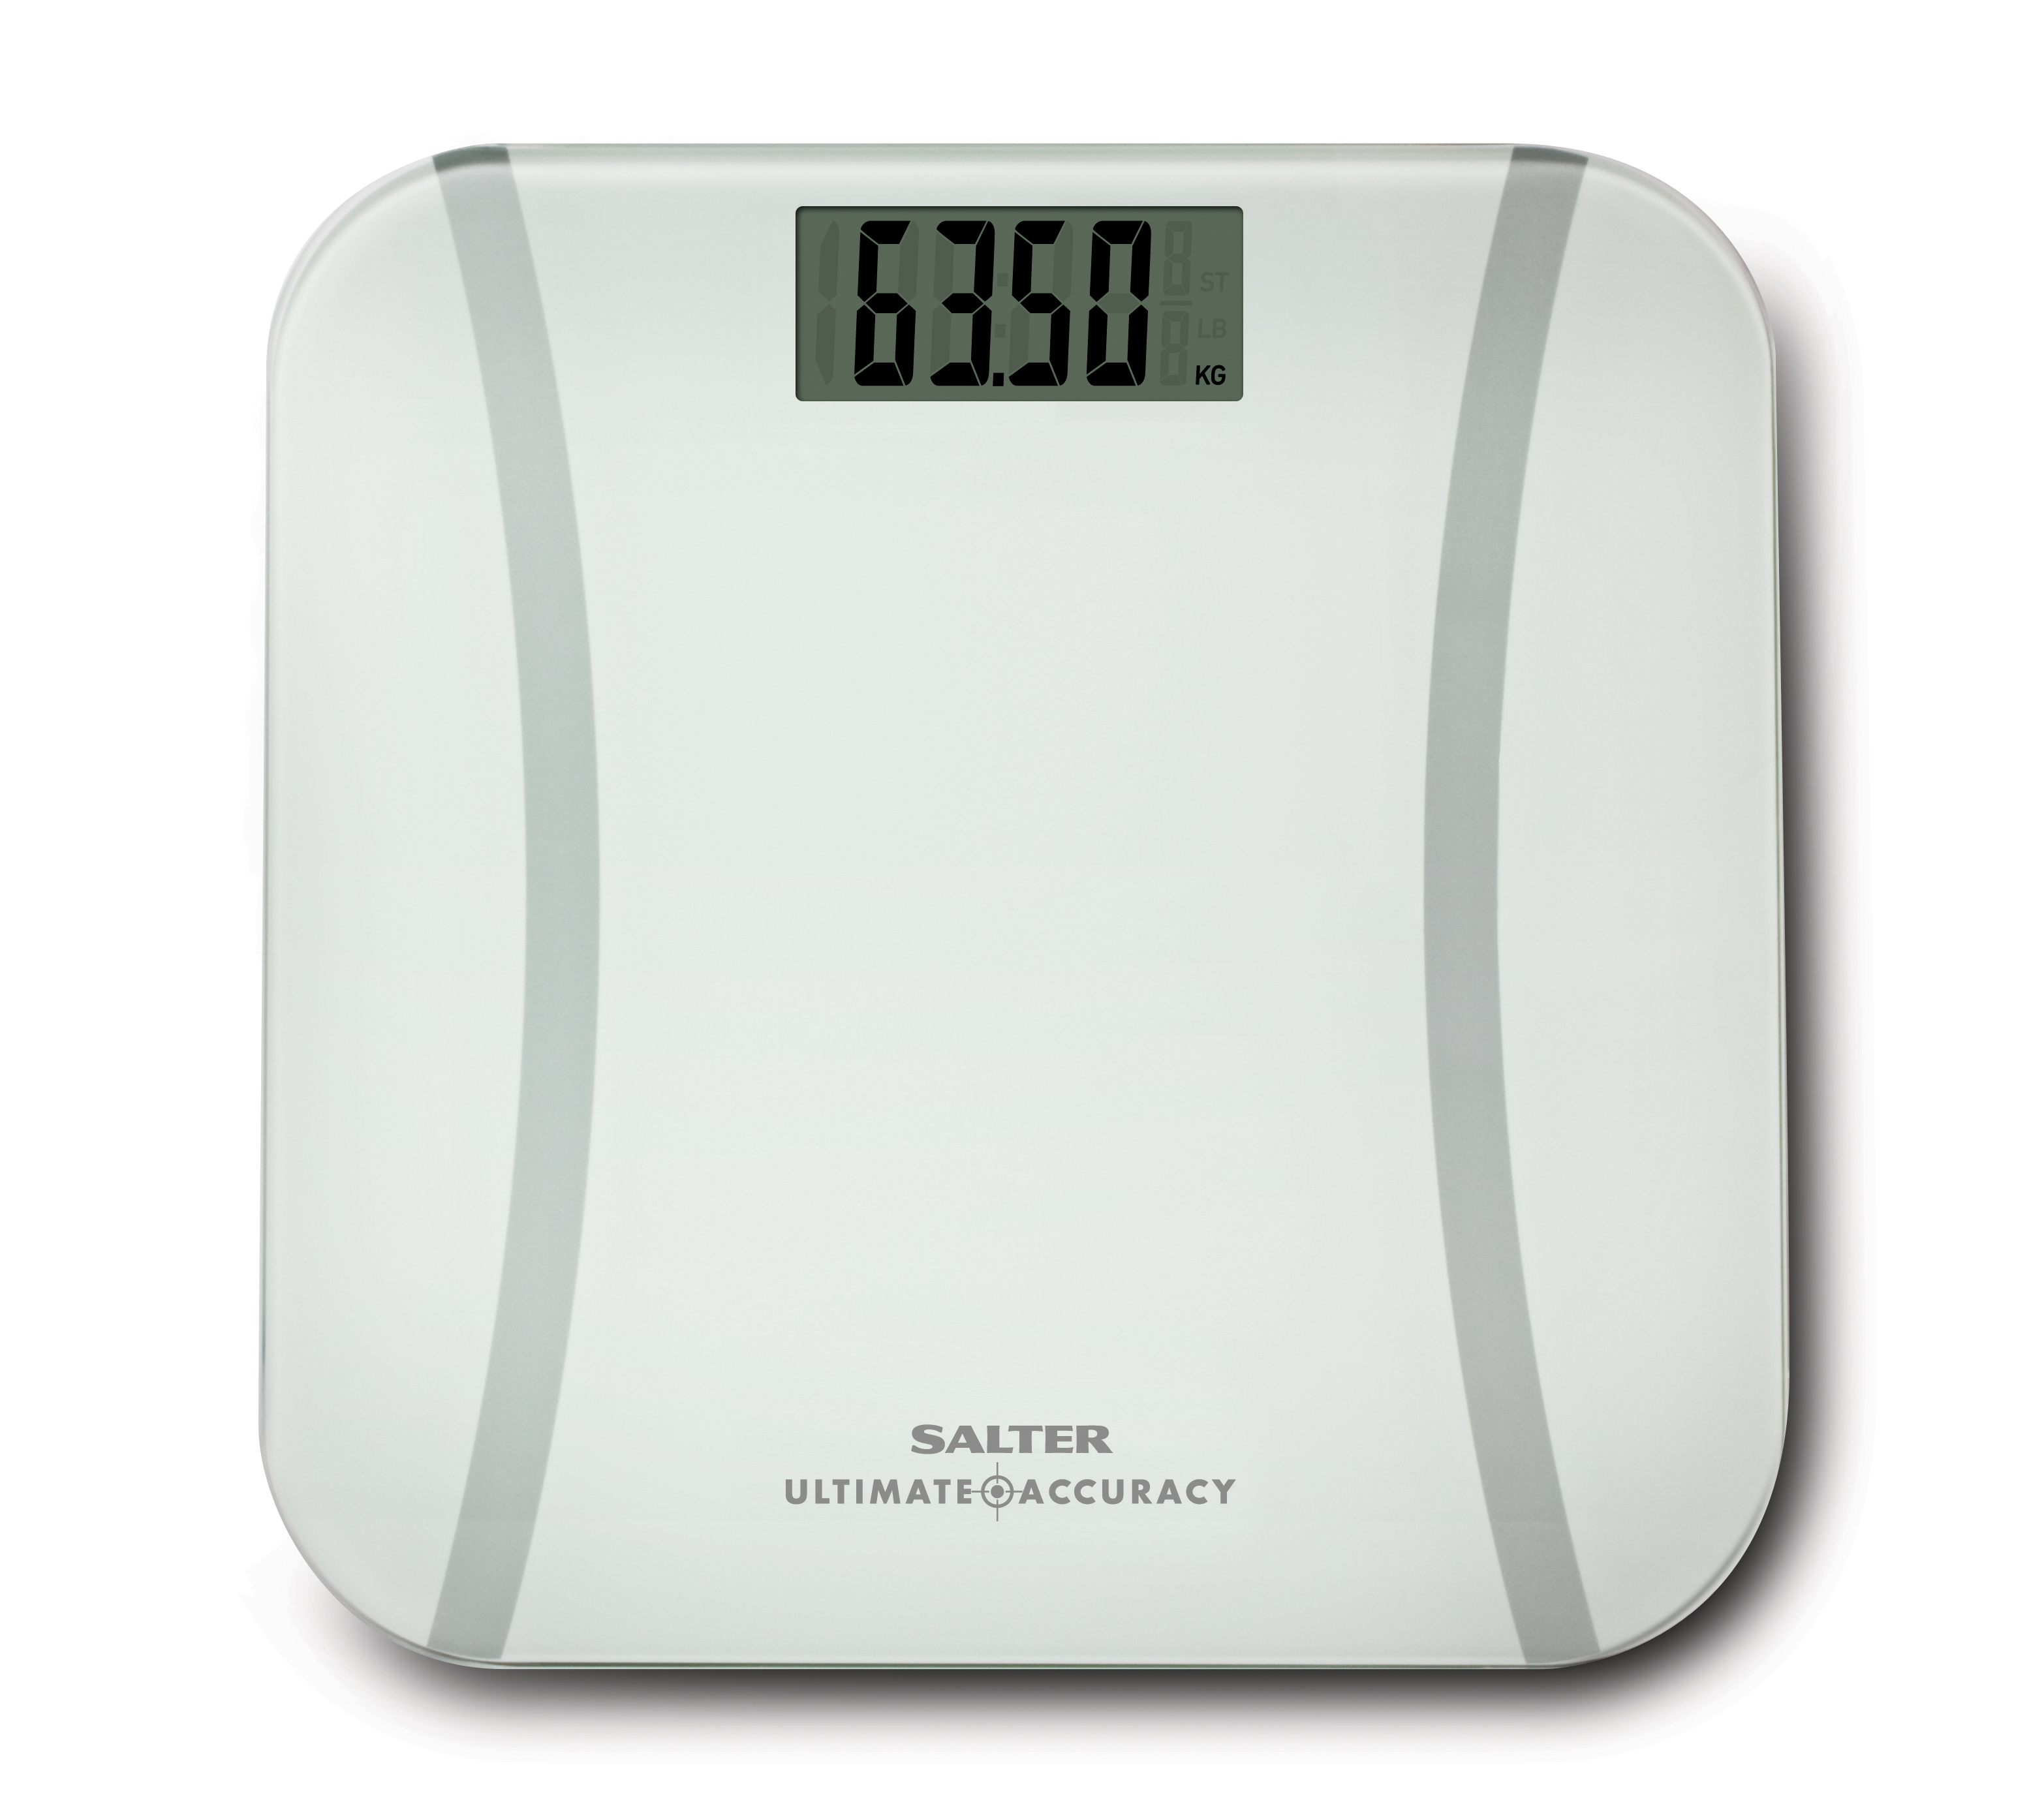 Salter Ultimate Accuracy Digital Bathroom Scales - White ...